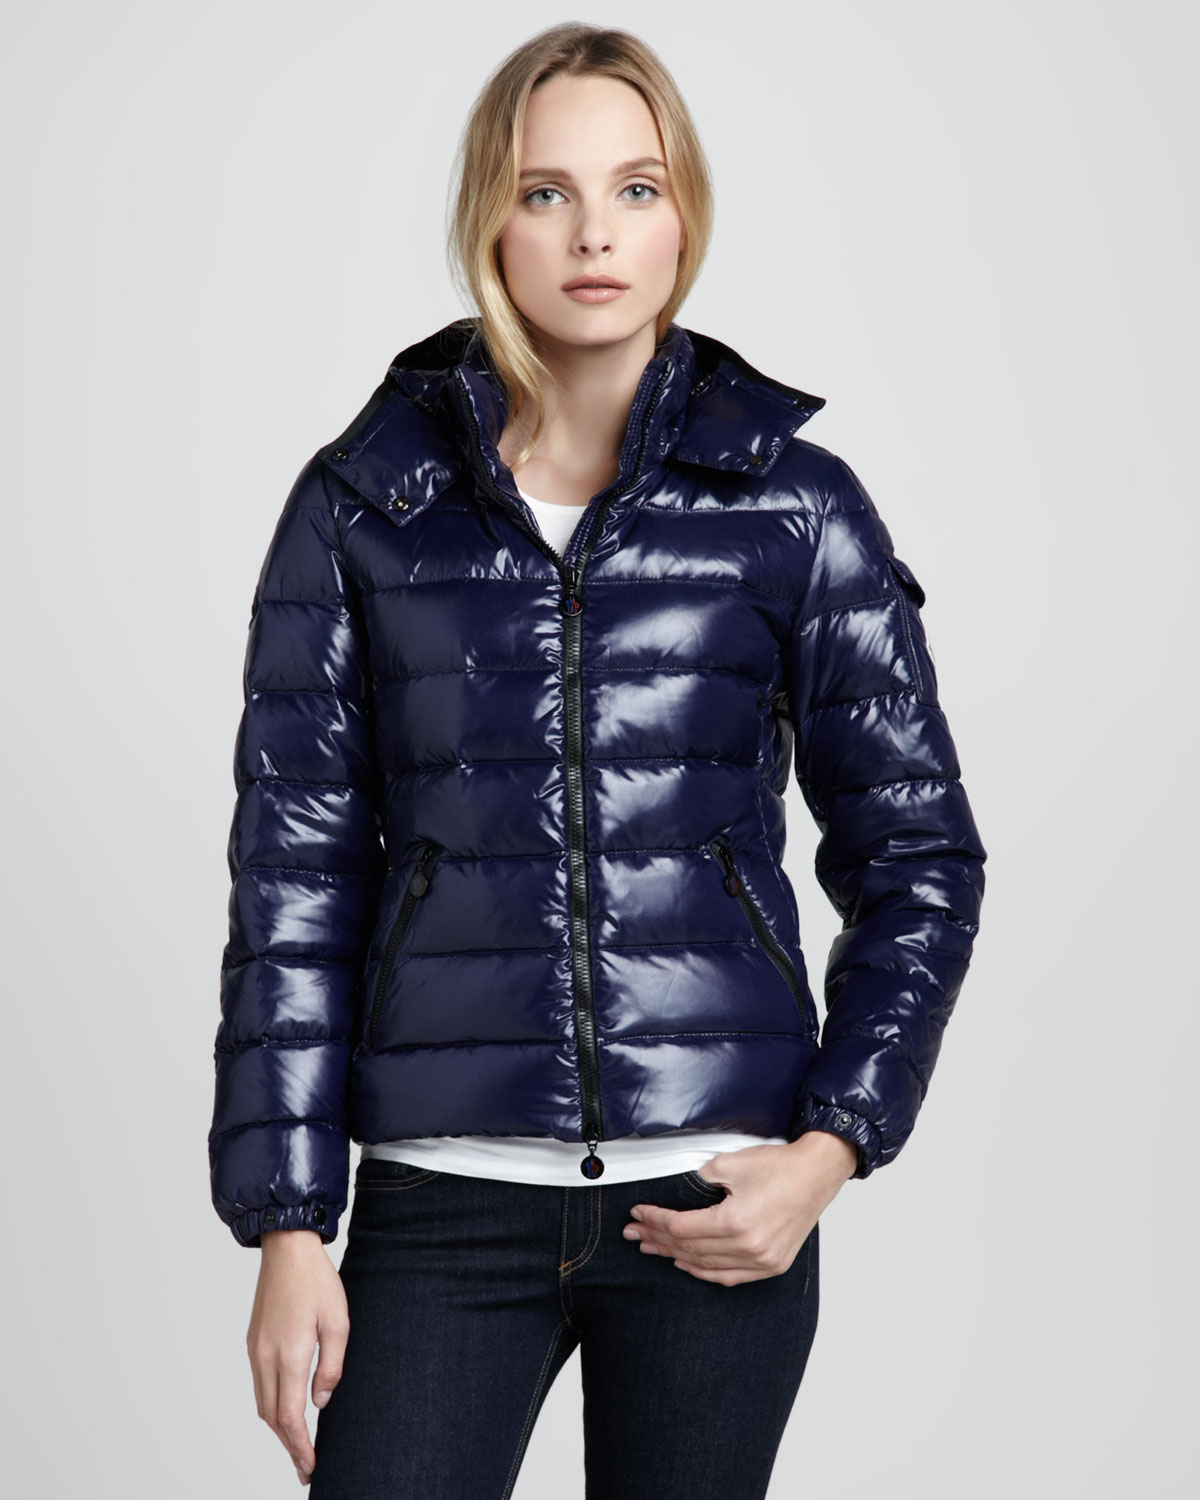 Lyst - Moncler Bady Short Puffer Jacket in Blue